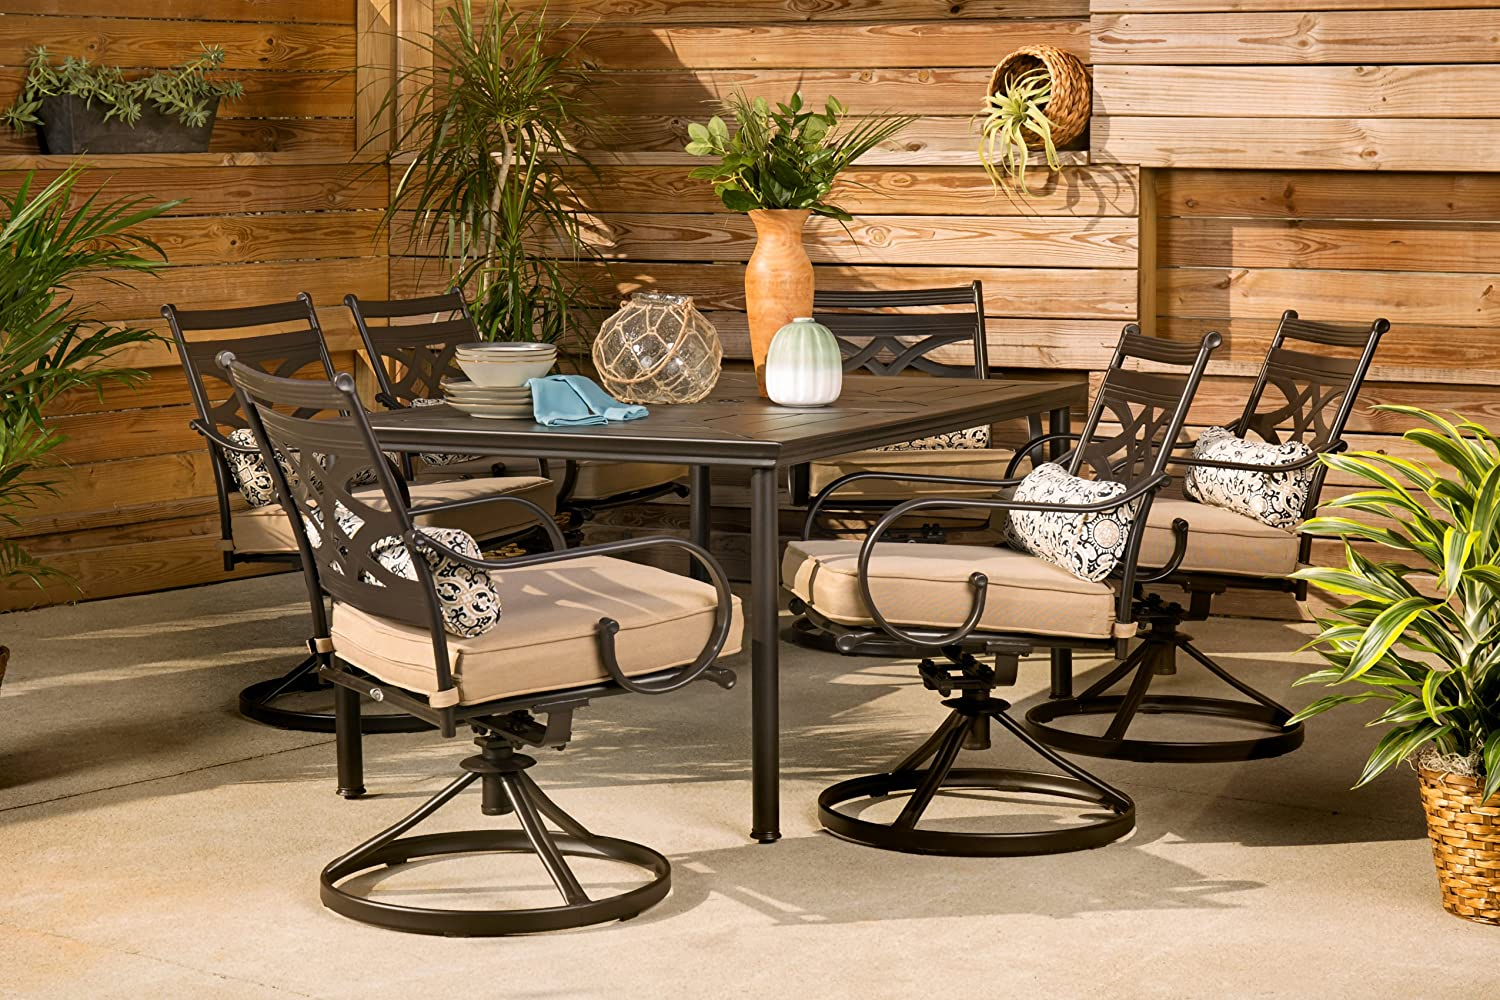 Amazon.com: Hanover Patio Montclair 7-Piece Dining Set in Country Cork with  6 Swivel Rockers, MCLRDN7PCSQSW6-TAN Outdoor Furniture, Tan: Garden &  Outdoor - Amazon.com: Hanover Patio Montclair 7-Piece Dining Set In Country